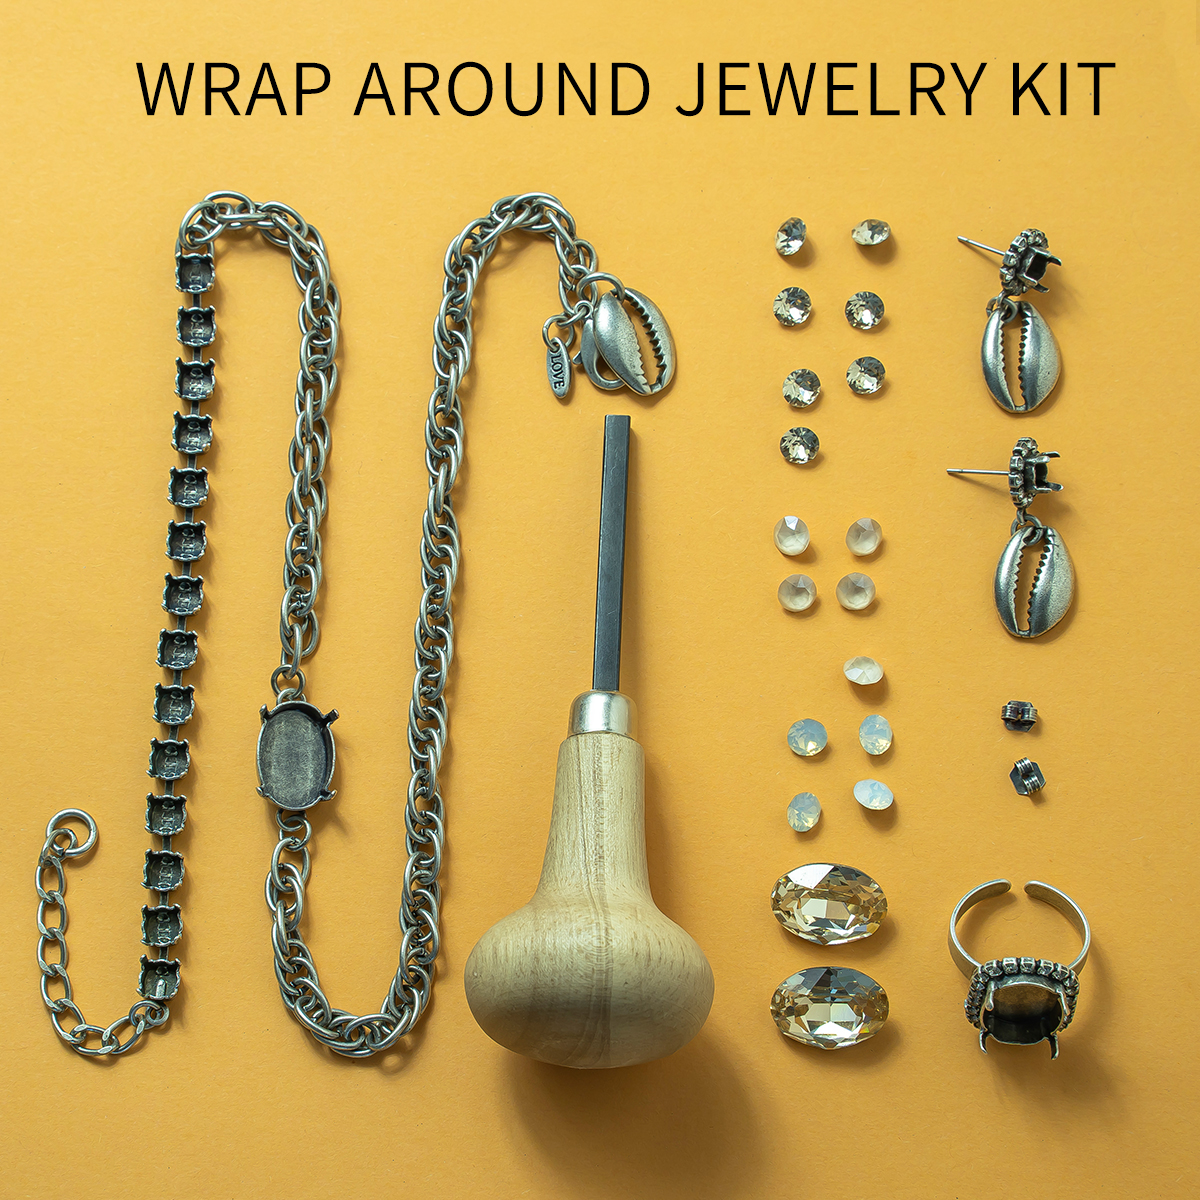 Wrap around jewelry DIY Kit